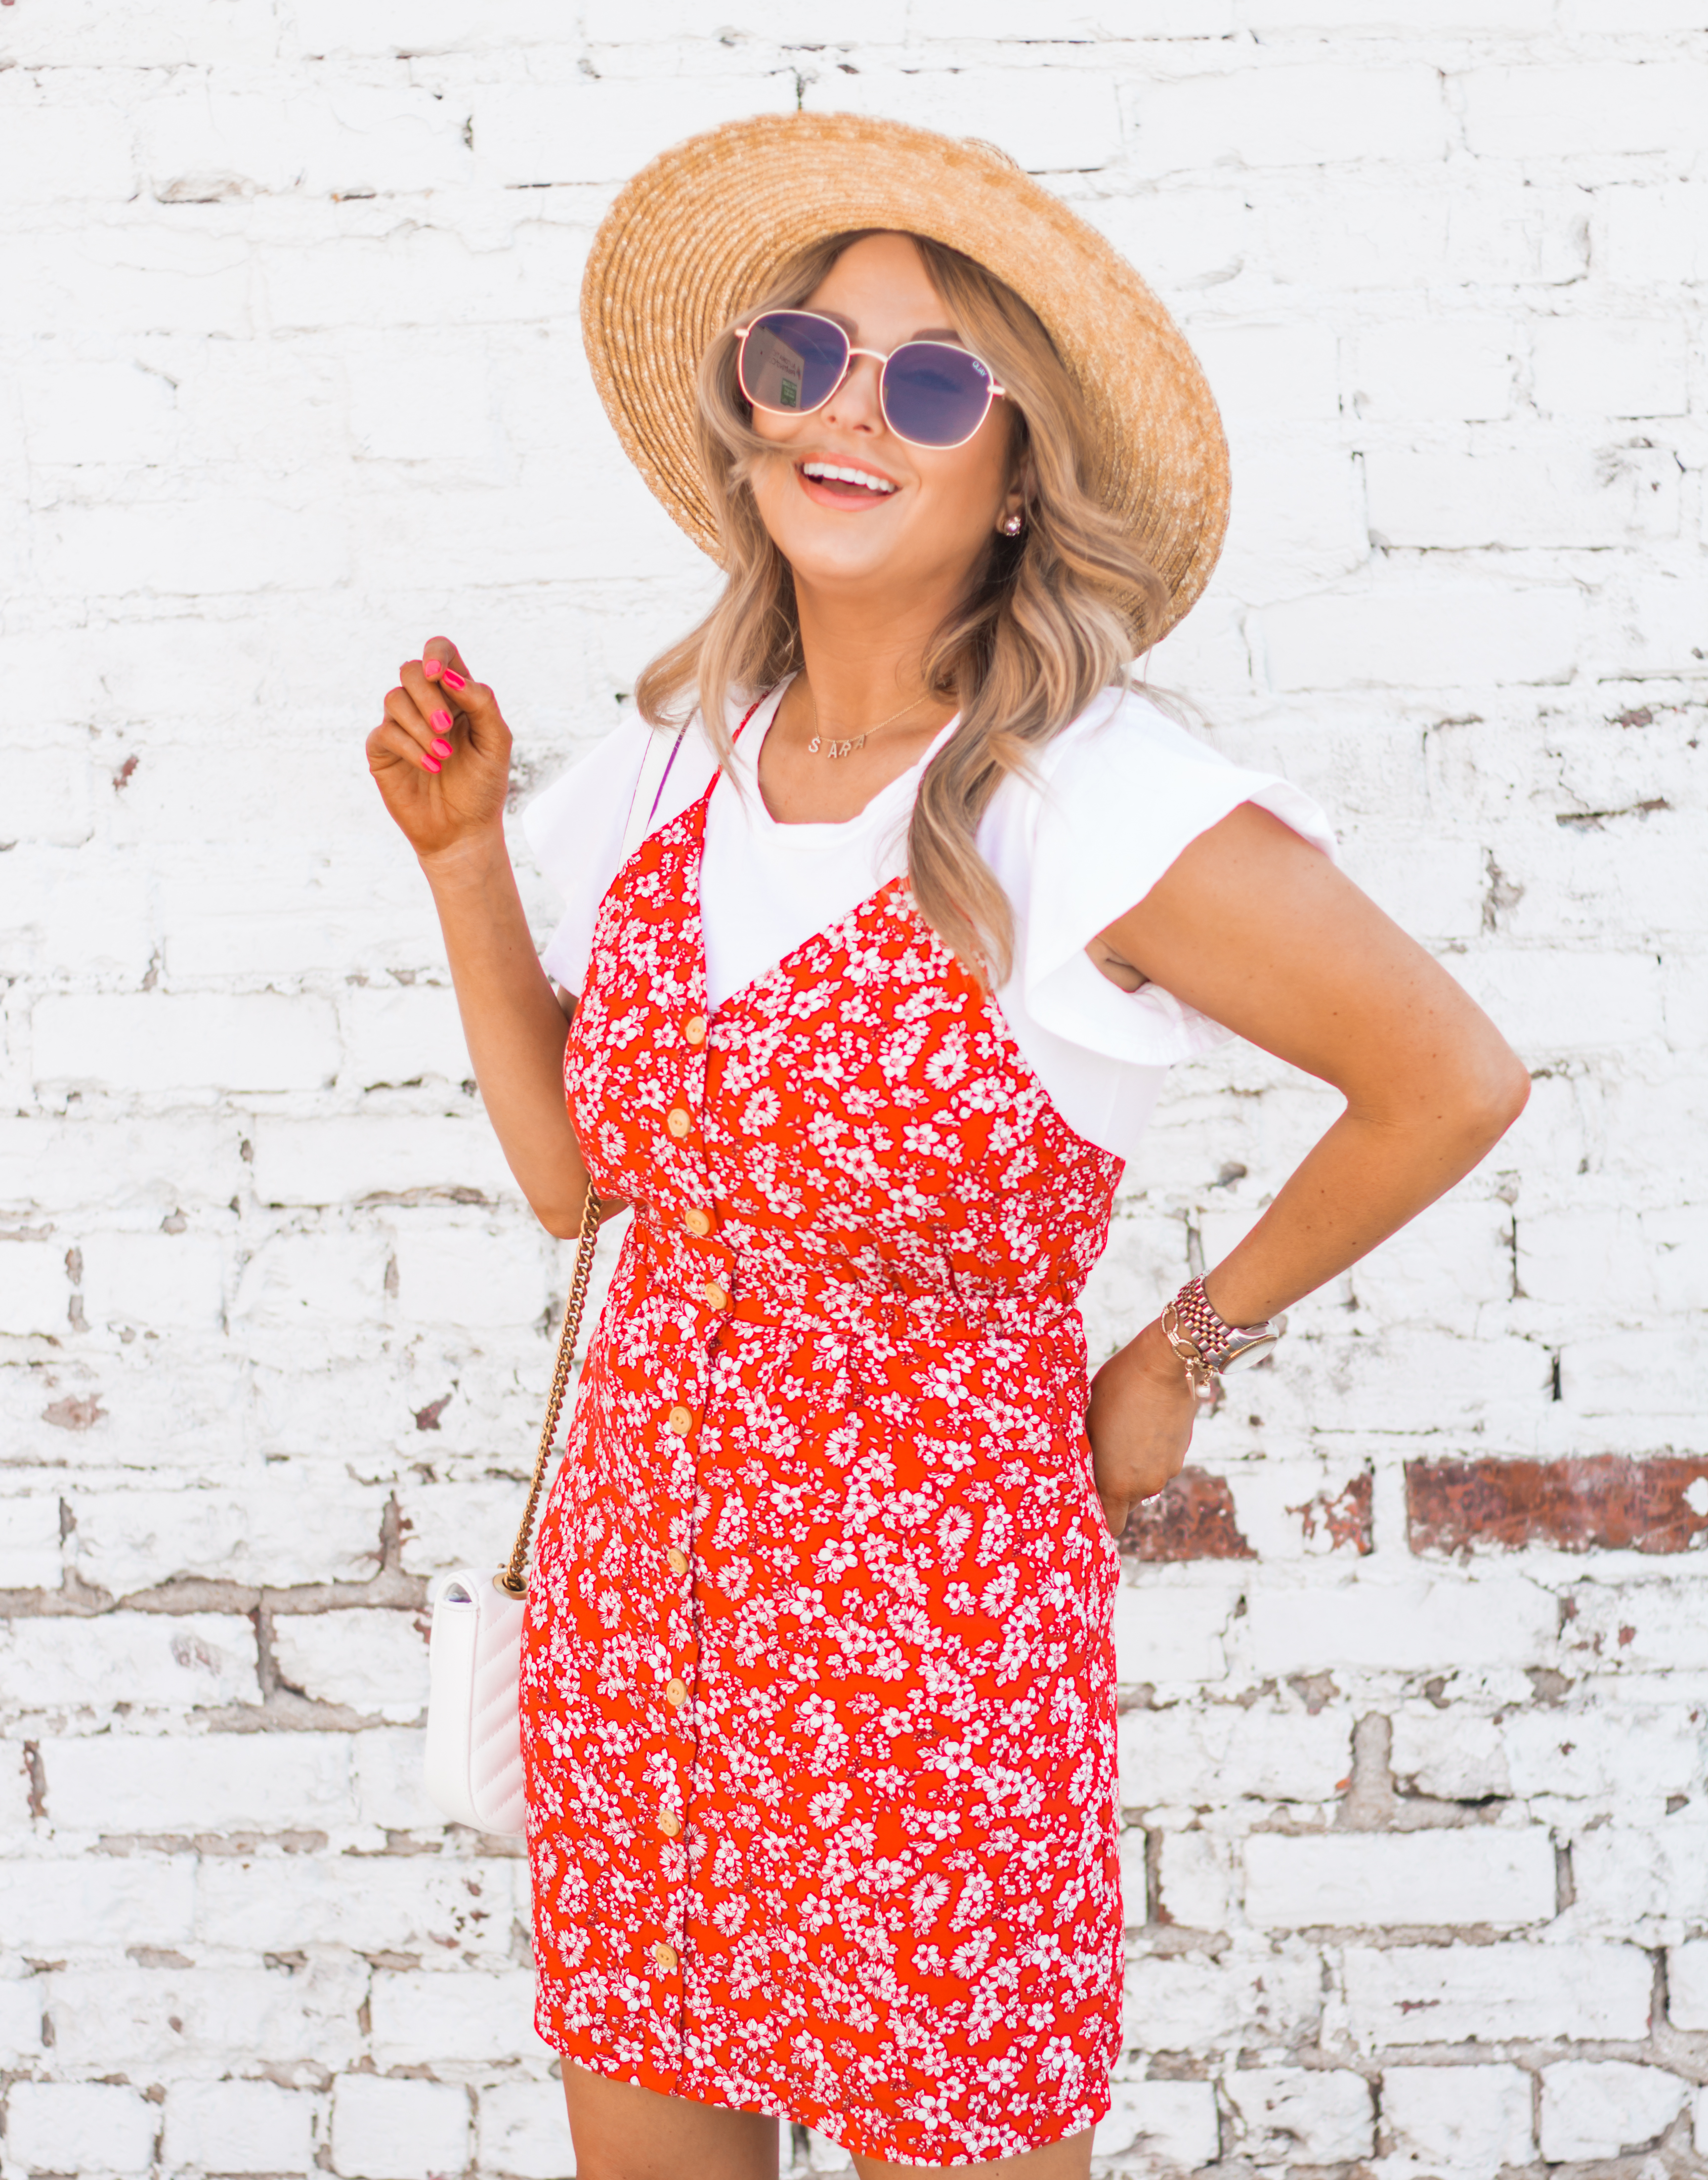 red-sundress-spring-summer-dress-floral dress-women's fashion- spring fashion-summer fashion-brixton hat-white booties-omaha blogger-sabby style-1